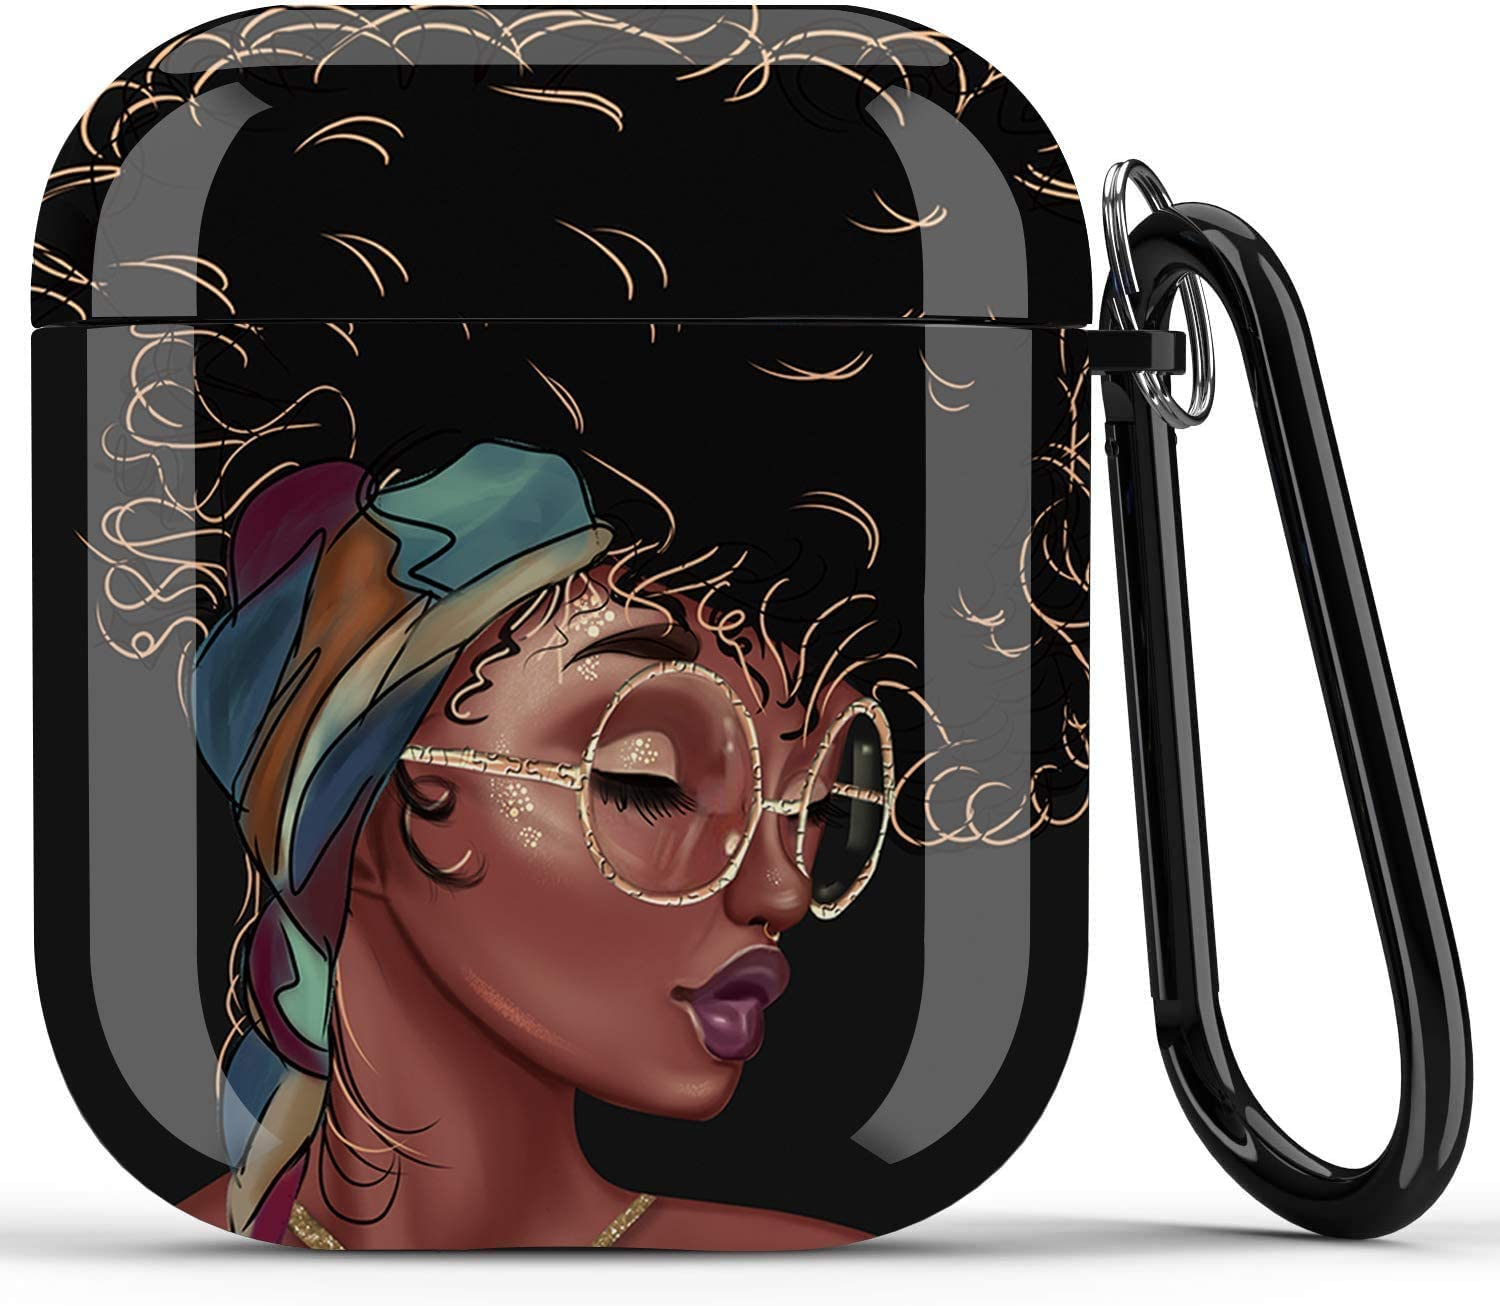 Airpods Case - Icepos African American Airpods Accessories Protective Hard Case Cover Portable & Shockproof Women Girls with Keychain for Apple Airpods 2/1 Charging Case (Black Girl Right)